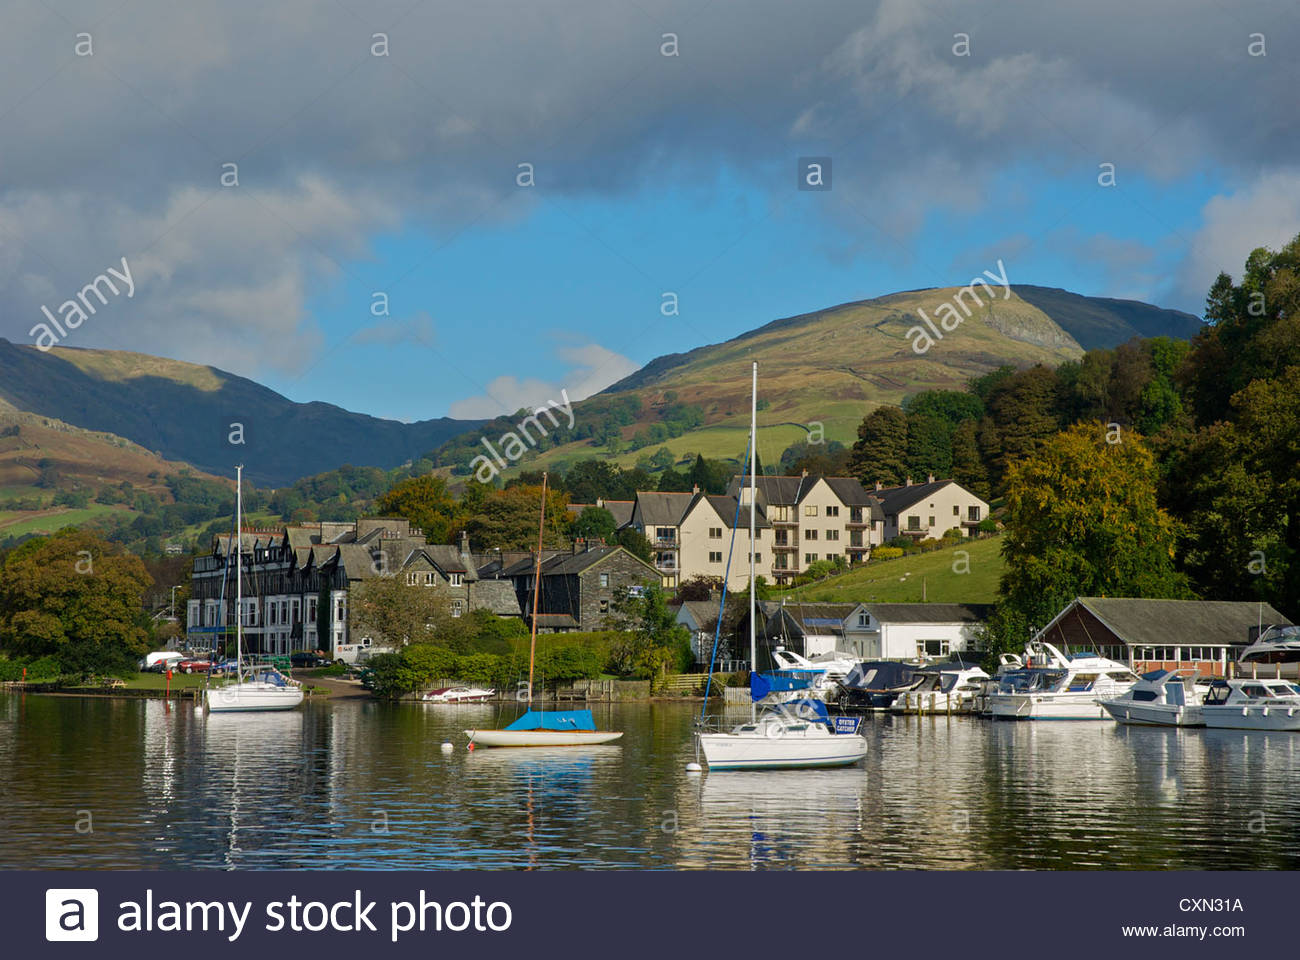 yachts-moored-on-lake-windermere-at-waterhead-lake-district-national-CXN31A-2.jpg